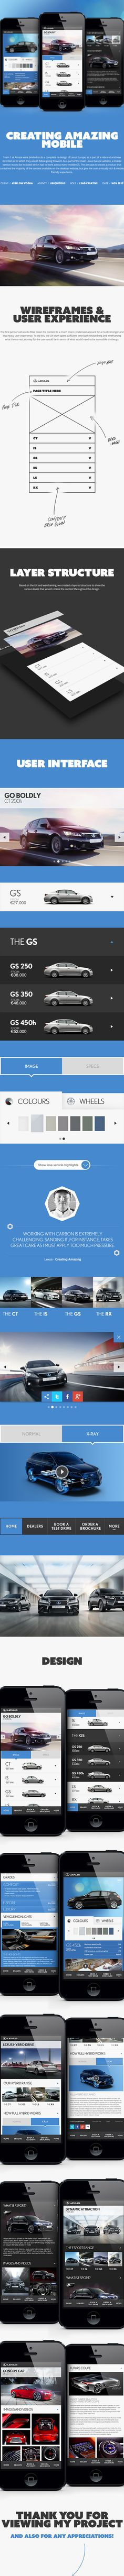 Lexus 'Creating Amazing' Mobile by Sean Hobman, via Behance Mobile Ui Design, App Ui Design, User Interface Design, Design Web, Site Design, Infiniti Q50, Wireframe, Conception D'applications, Design Spartan